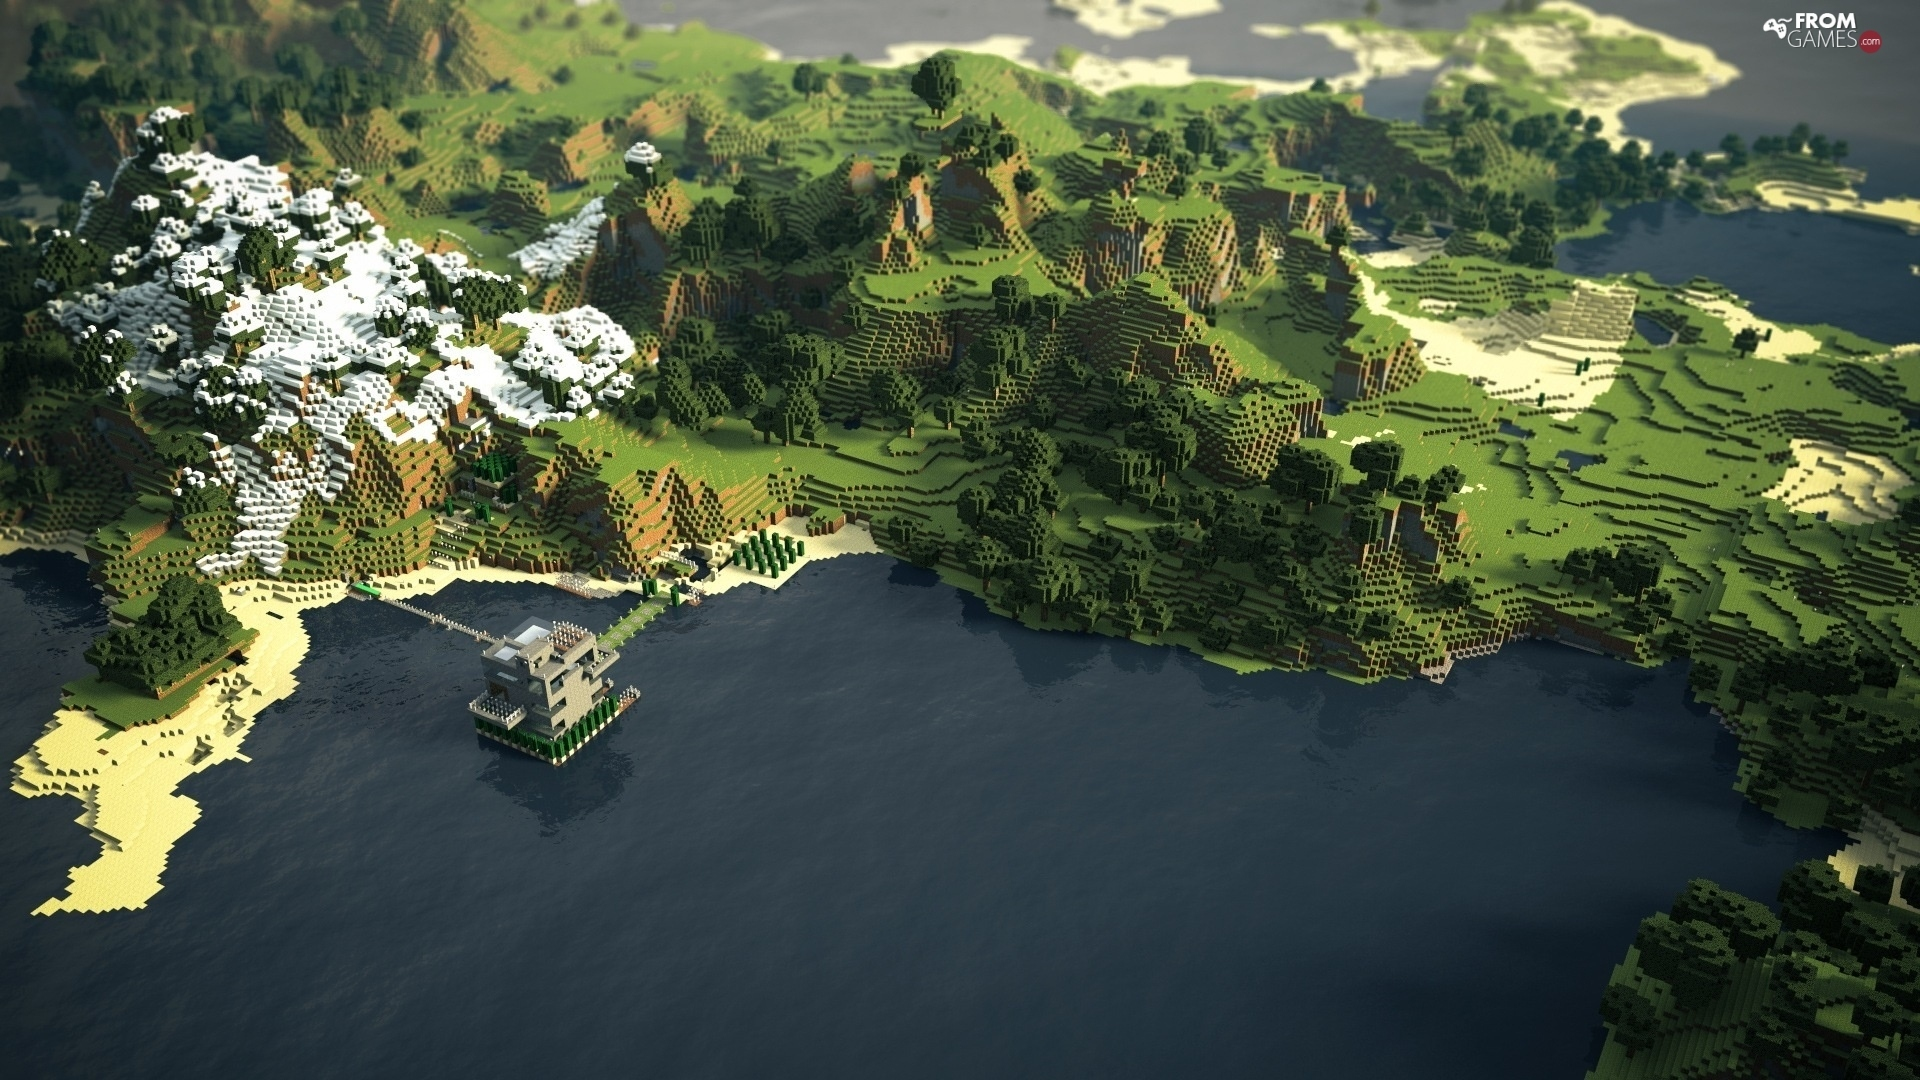 world square game Minecraft   From games wallpapers 1920x1080 1920x1080